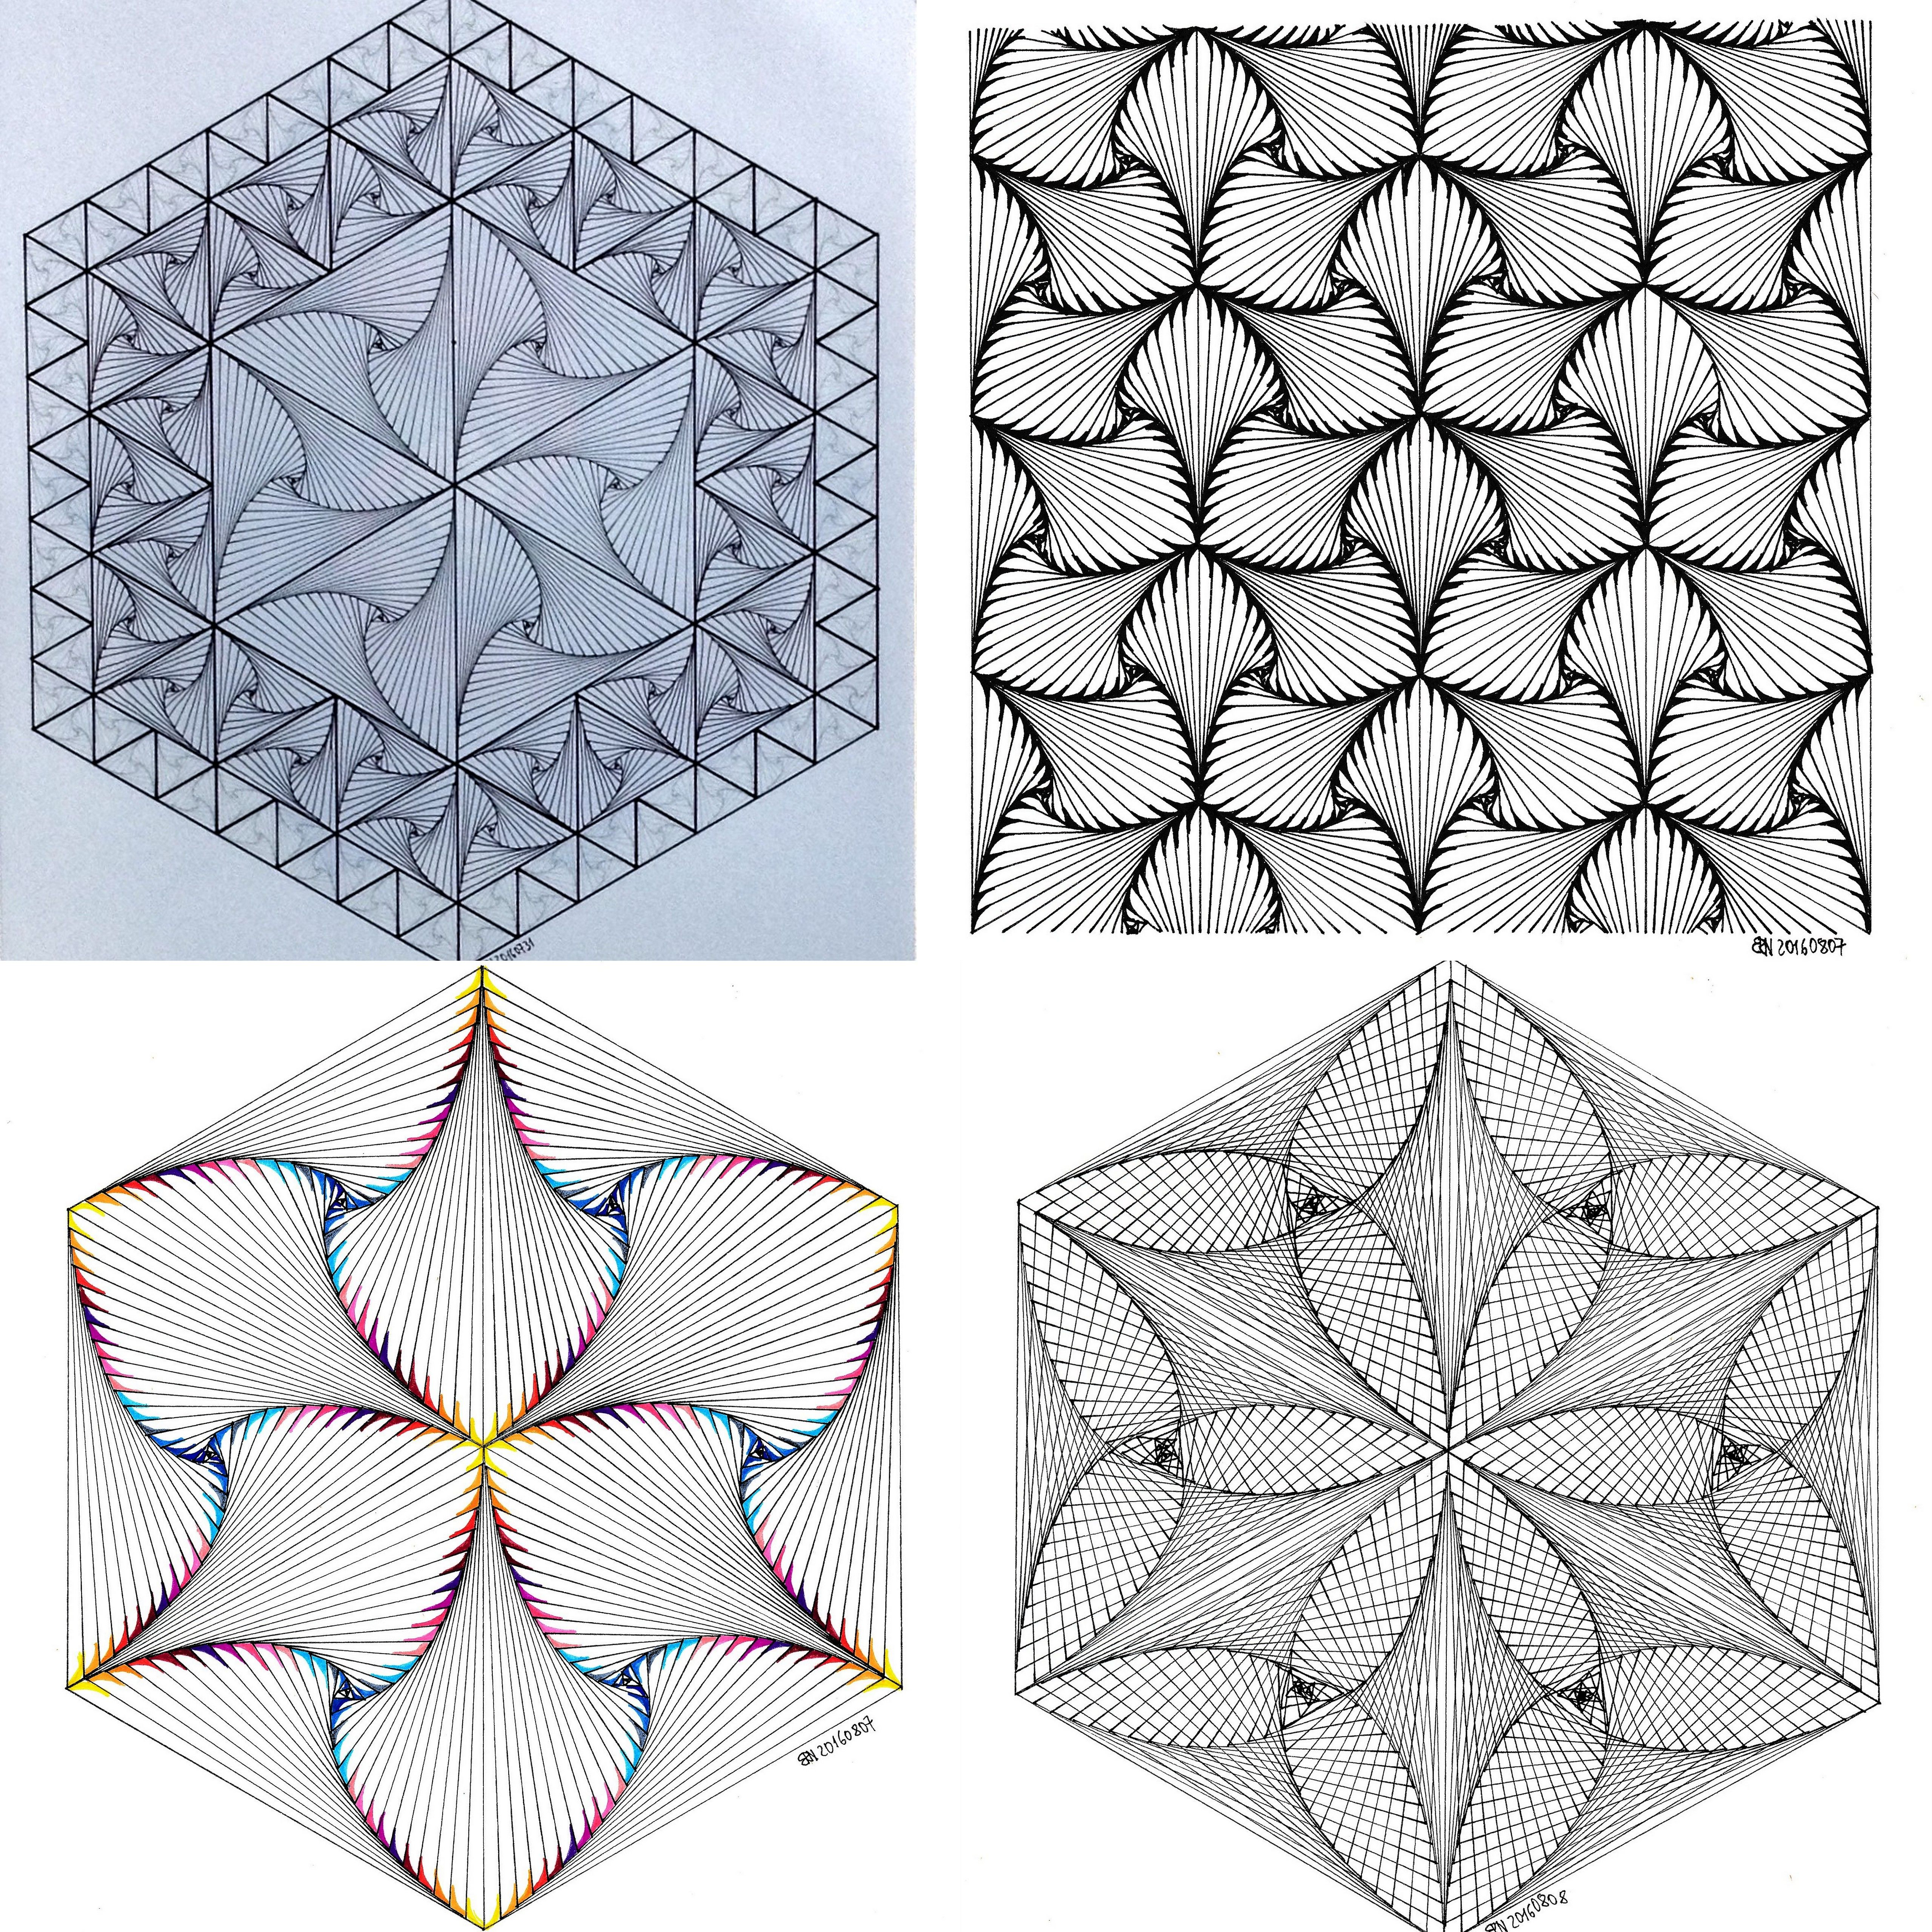 Geometry symmetry pattern isometric tessellation tiling geometry symmetry pattern isometric tessellation tiling fractal handmade dailygadgetfo Image collections